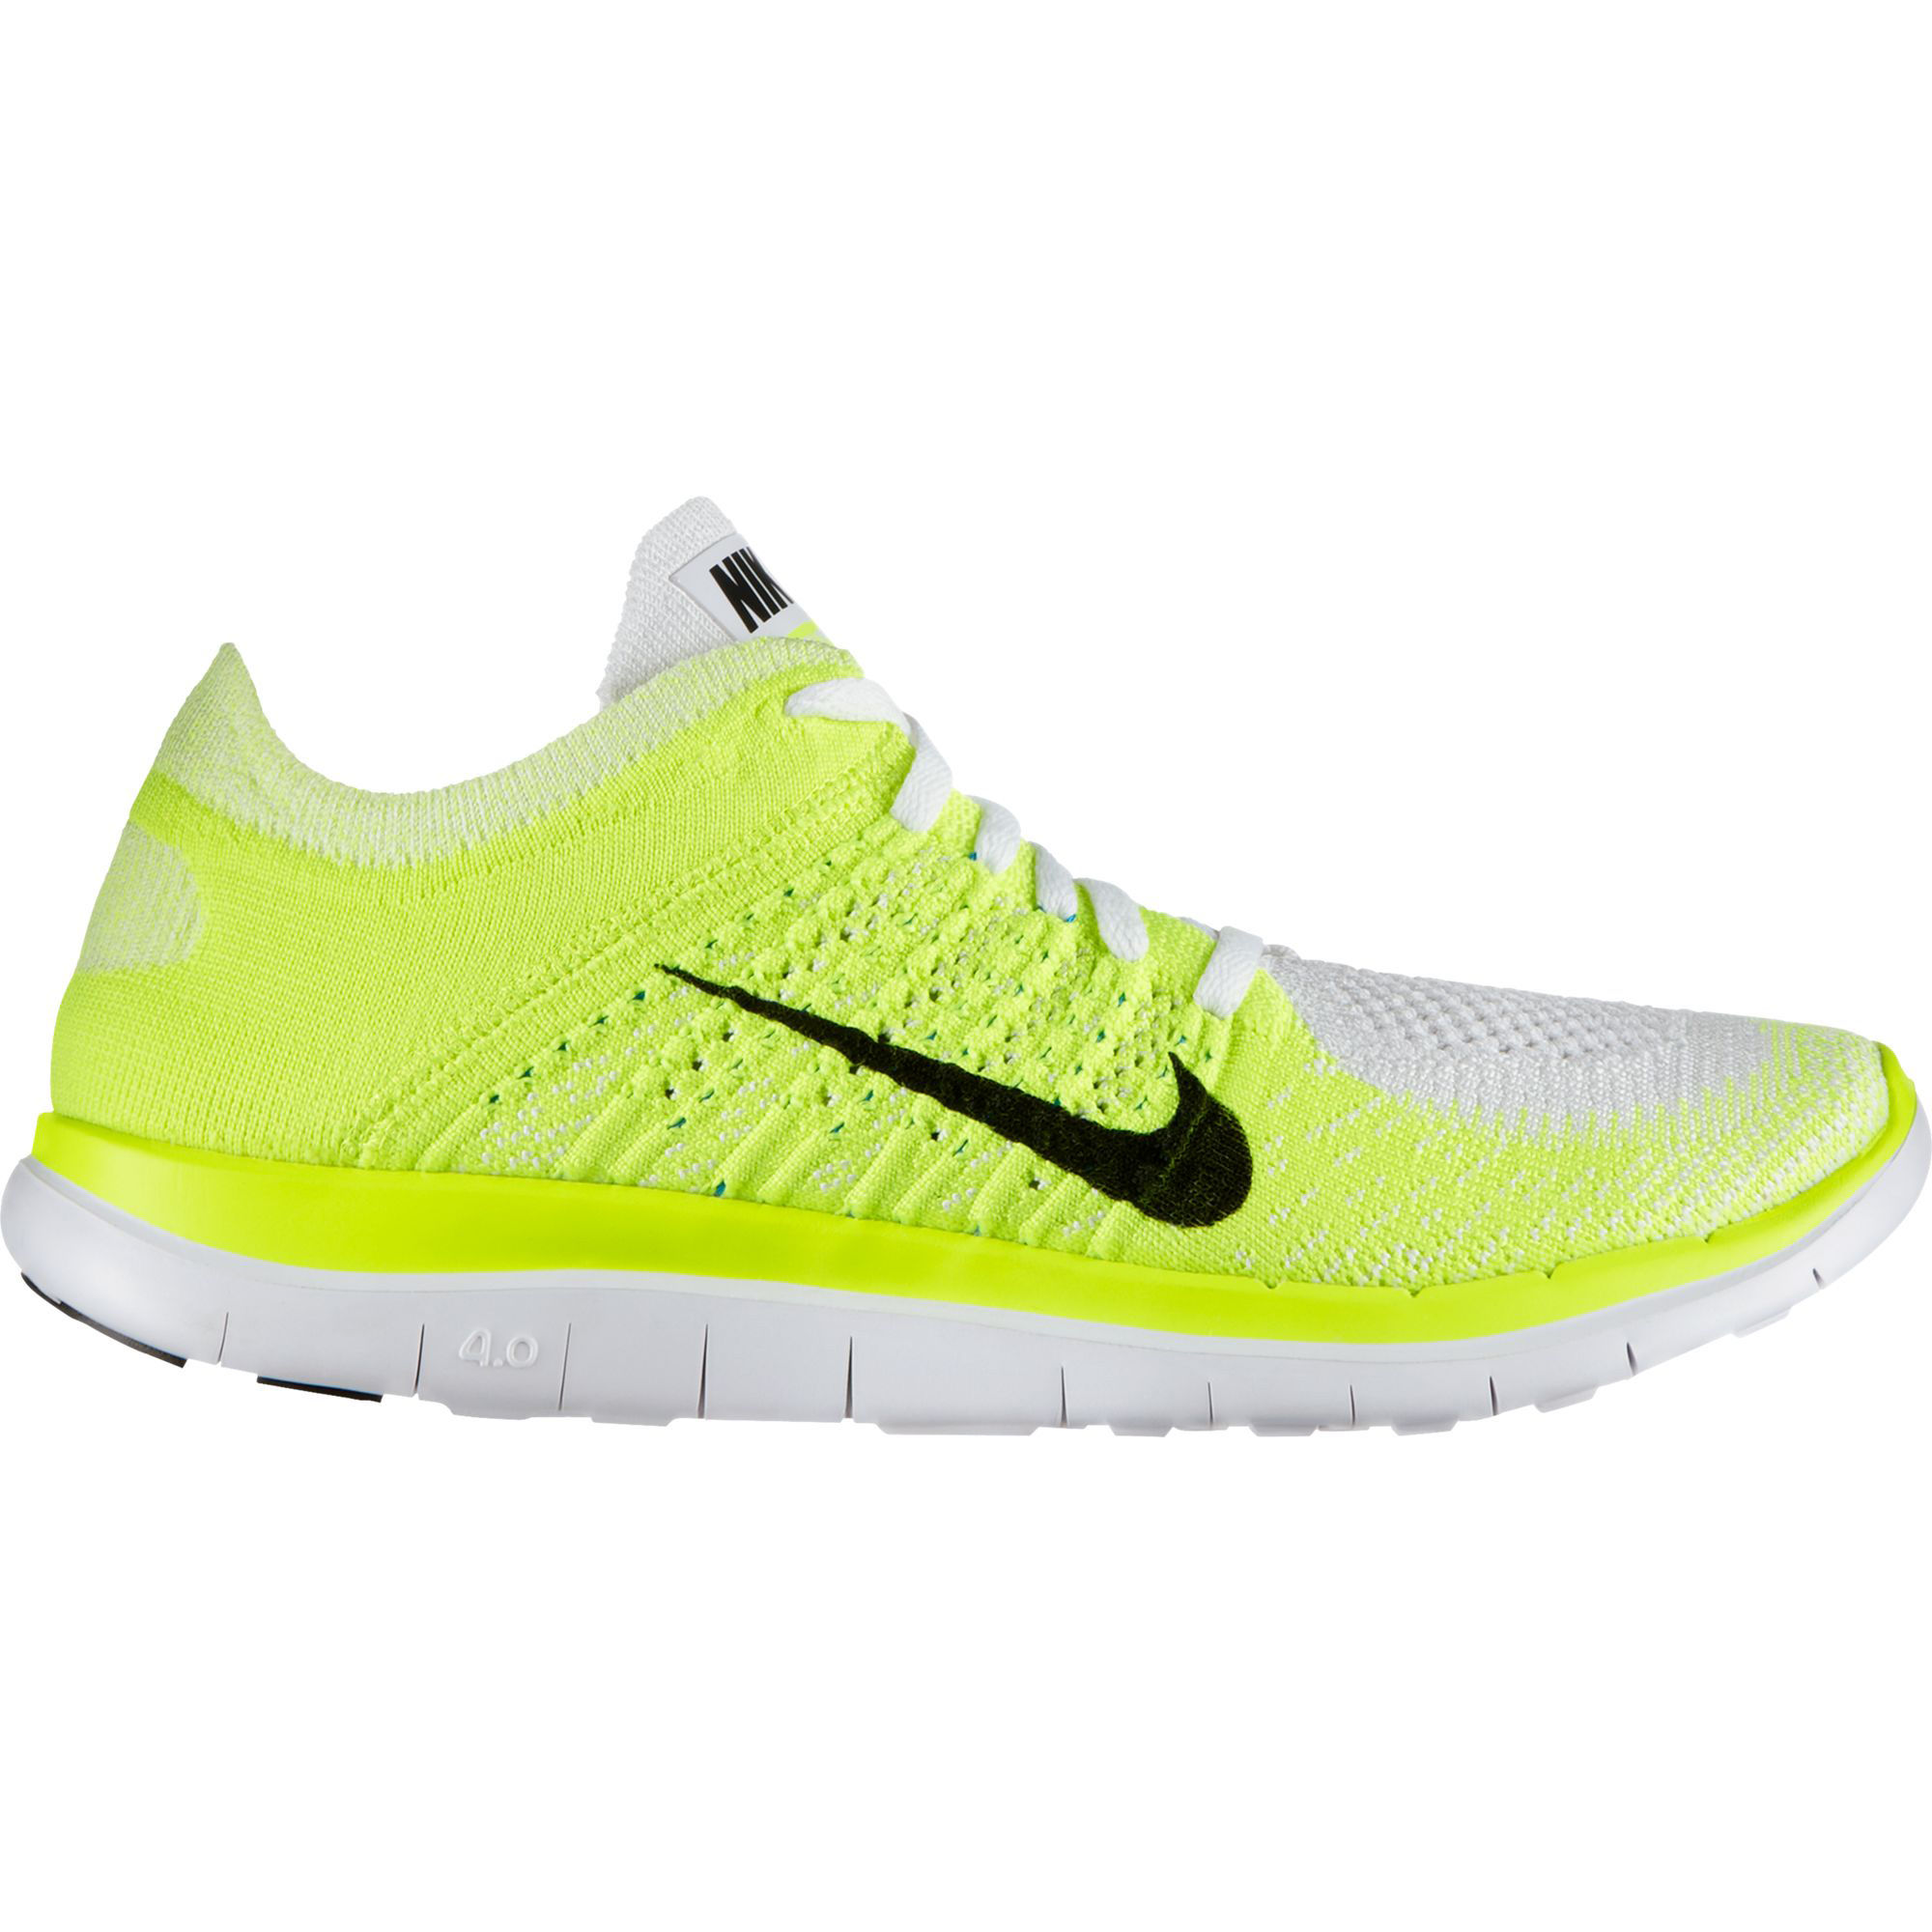 Nike Flyknit 4.0 White mooienschede.nu